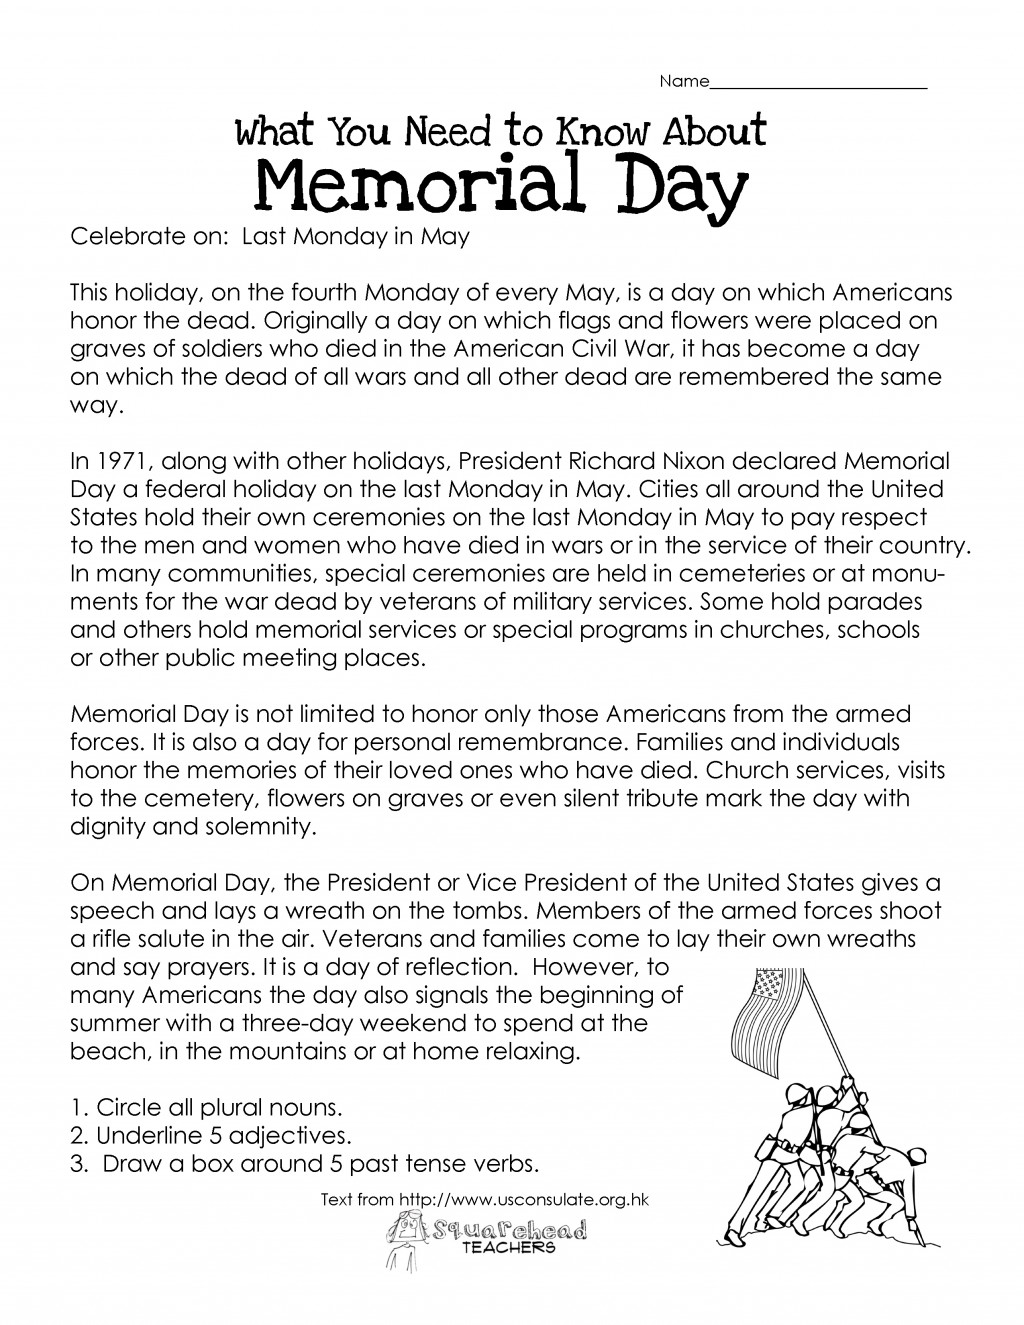 011 Memorial1 Essay Example Veterans Best Day Contest Ideas Titles Large